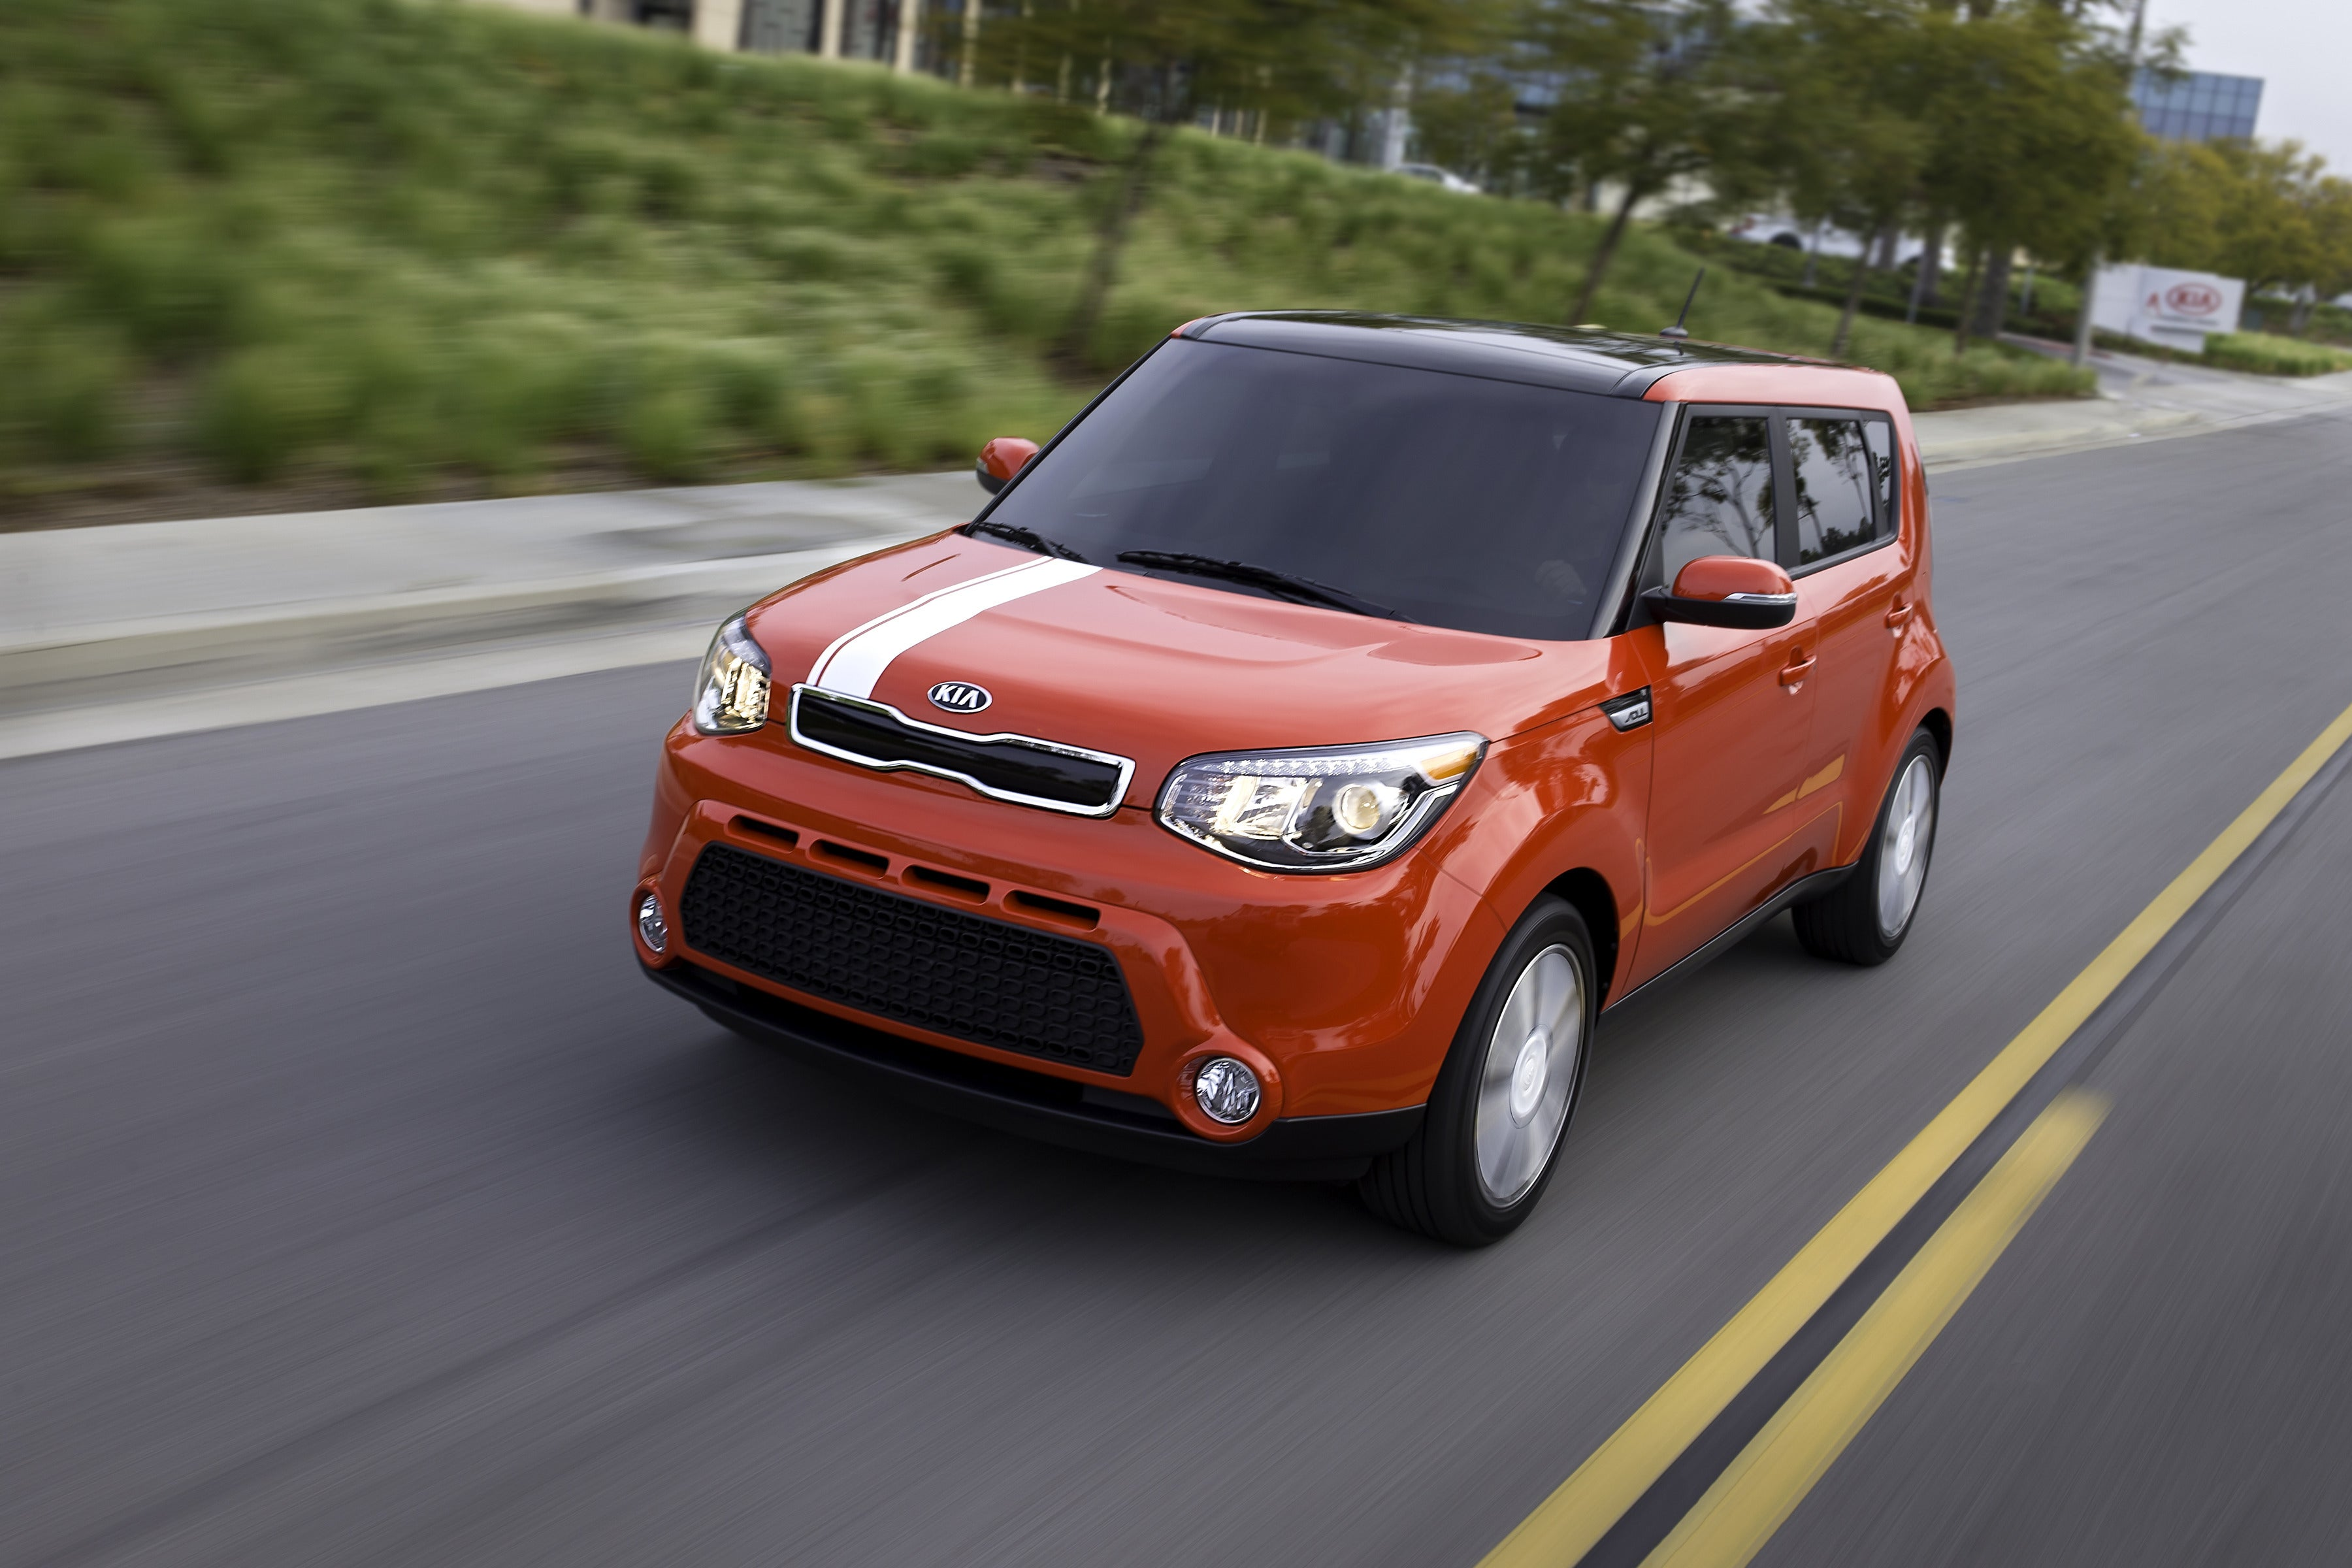 driver test original s car reviews review instrumented soul and kia photo